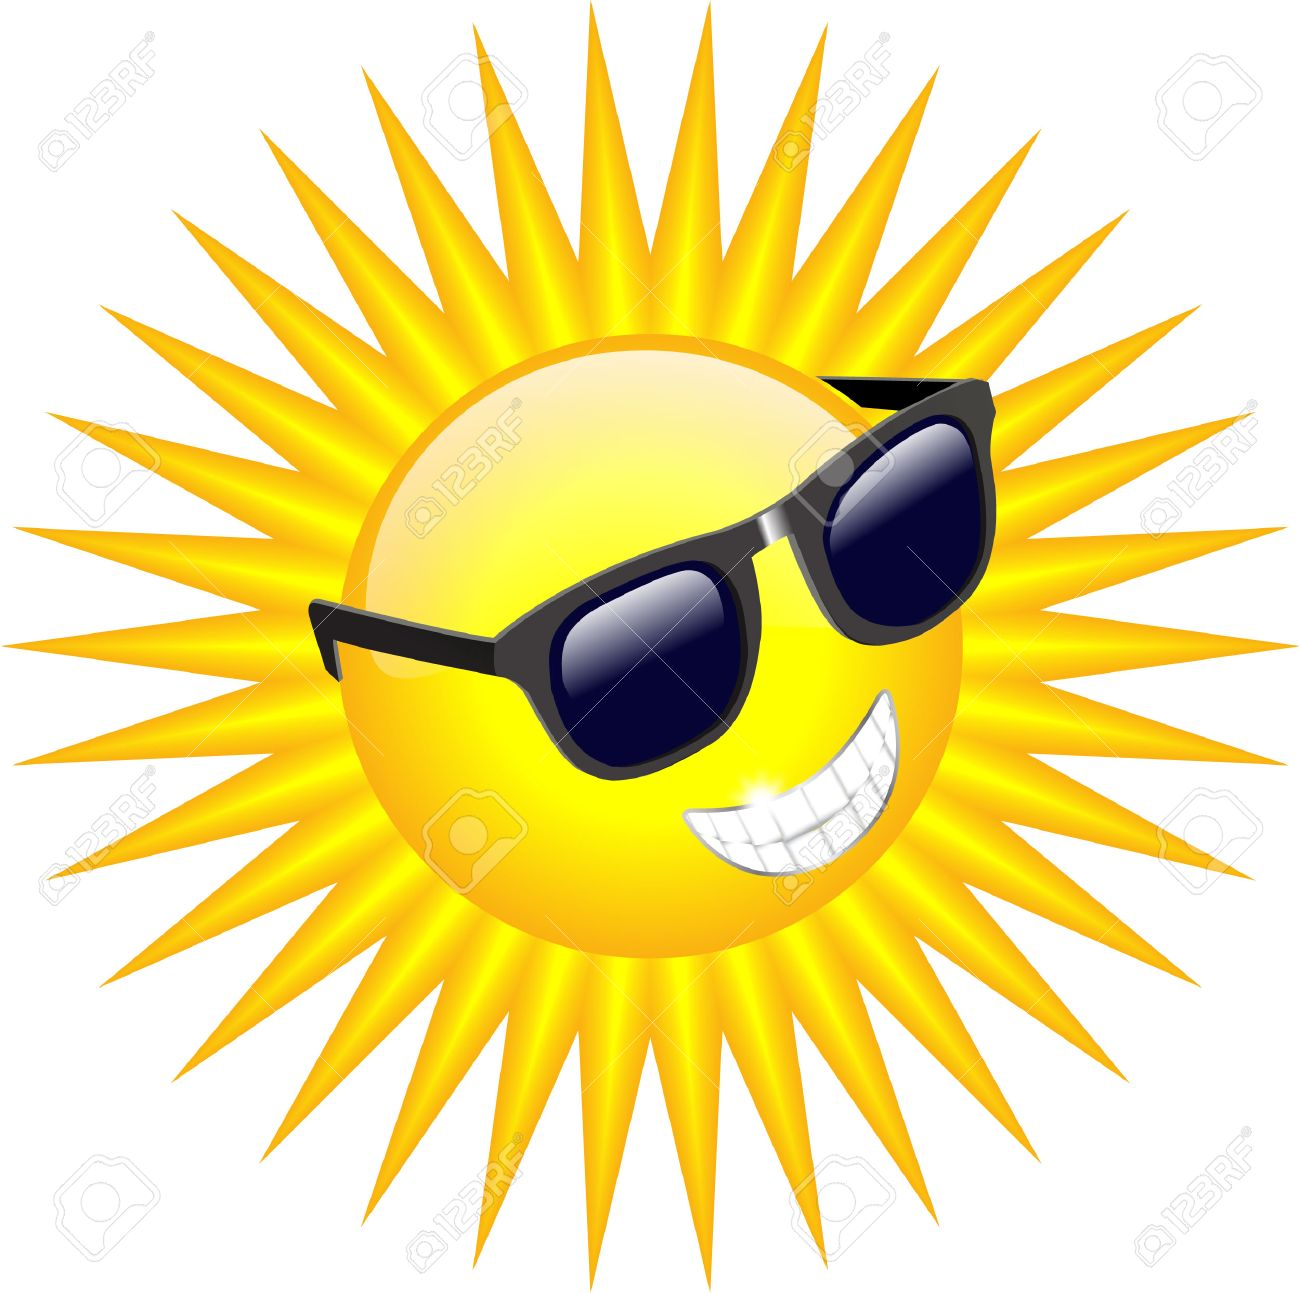 1300x1293 Cool Sun With Sunglasses Royalty Free Cliparts, Vectors, And Stock